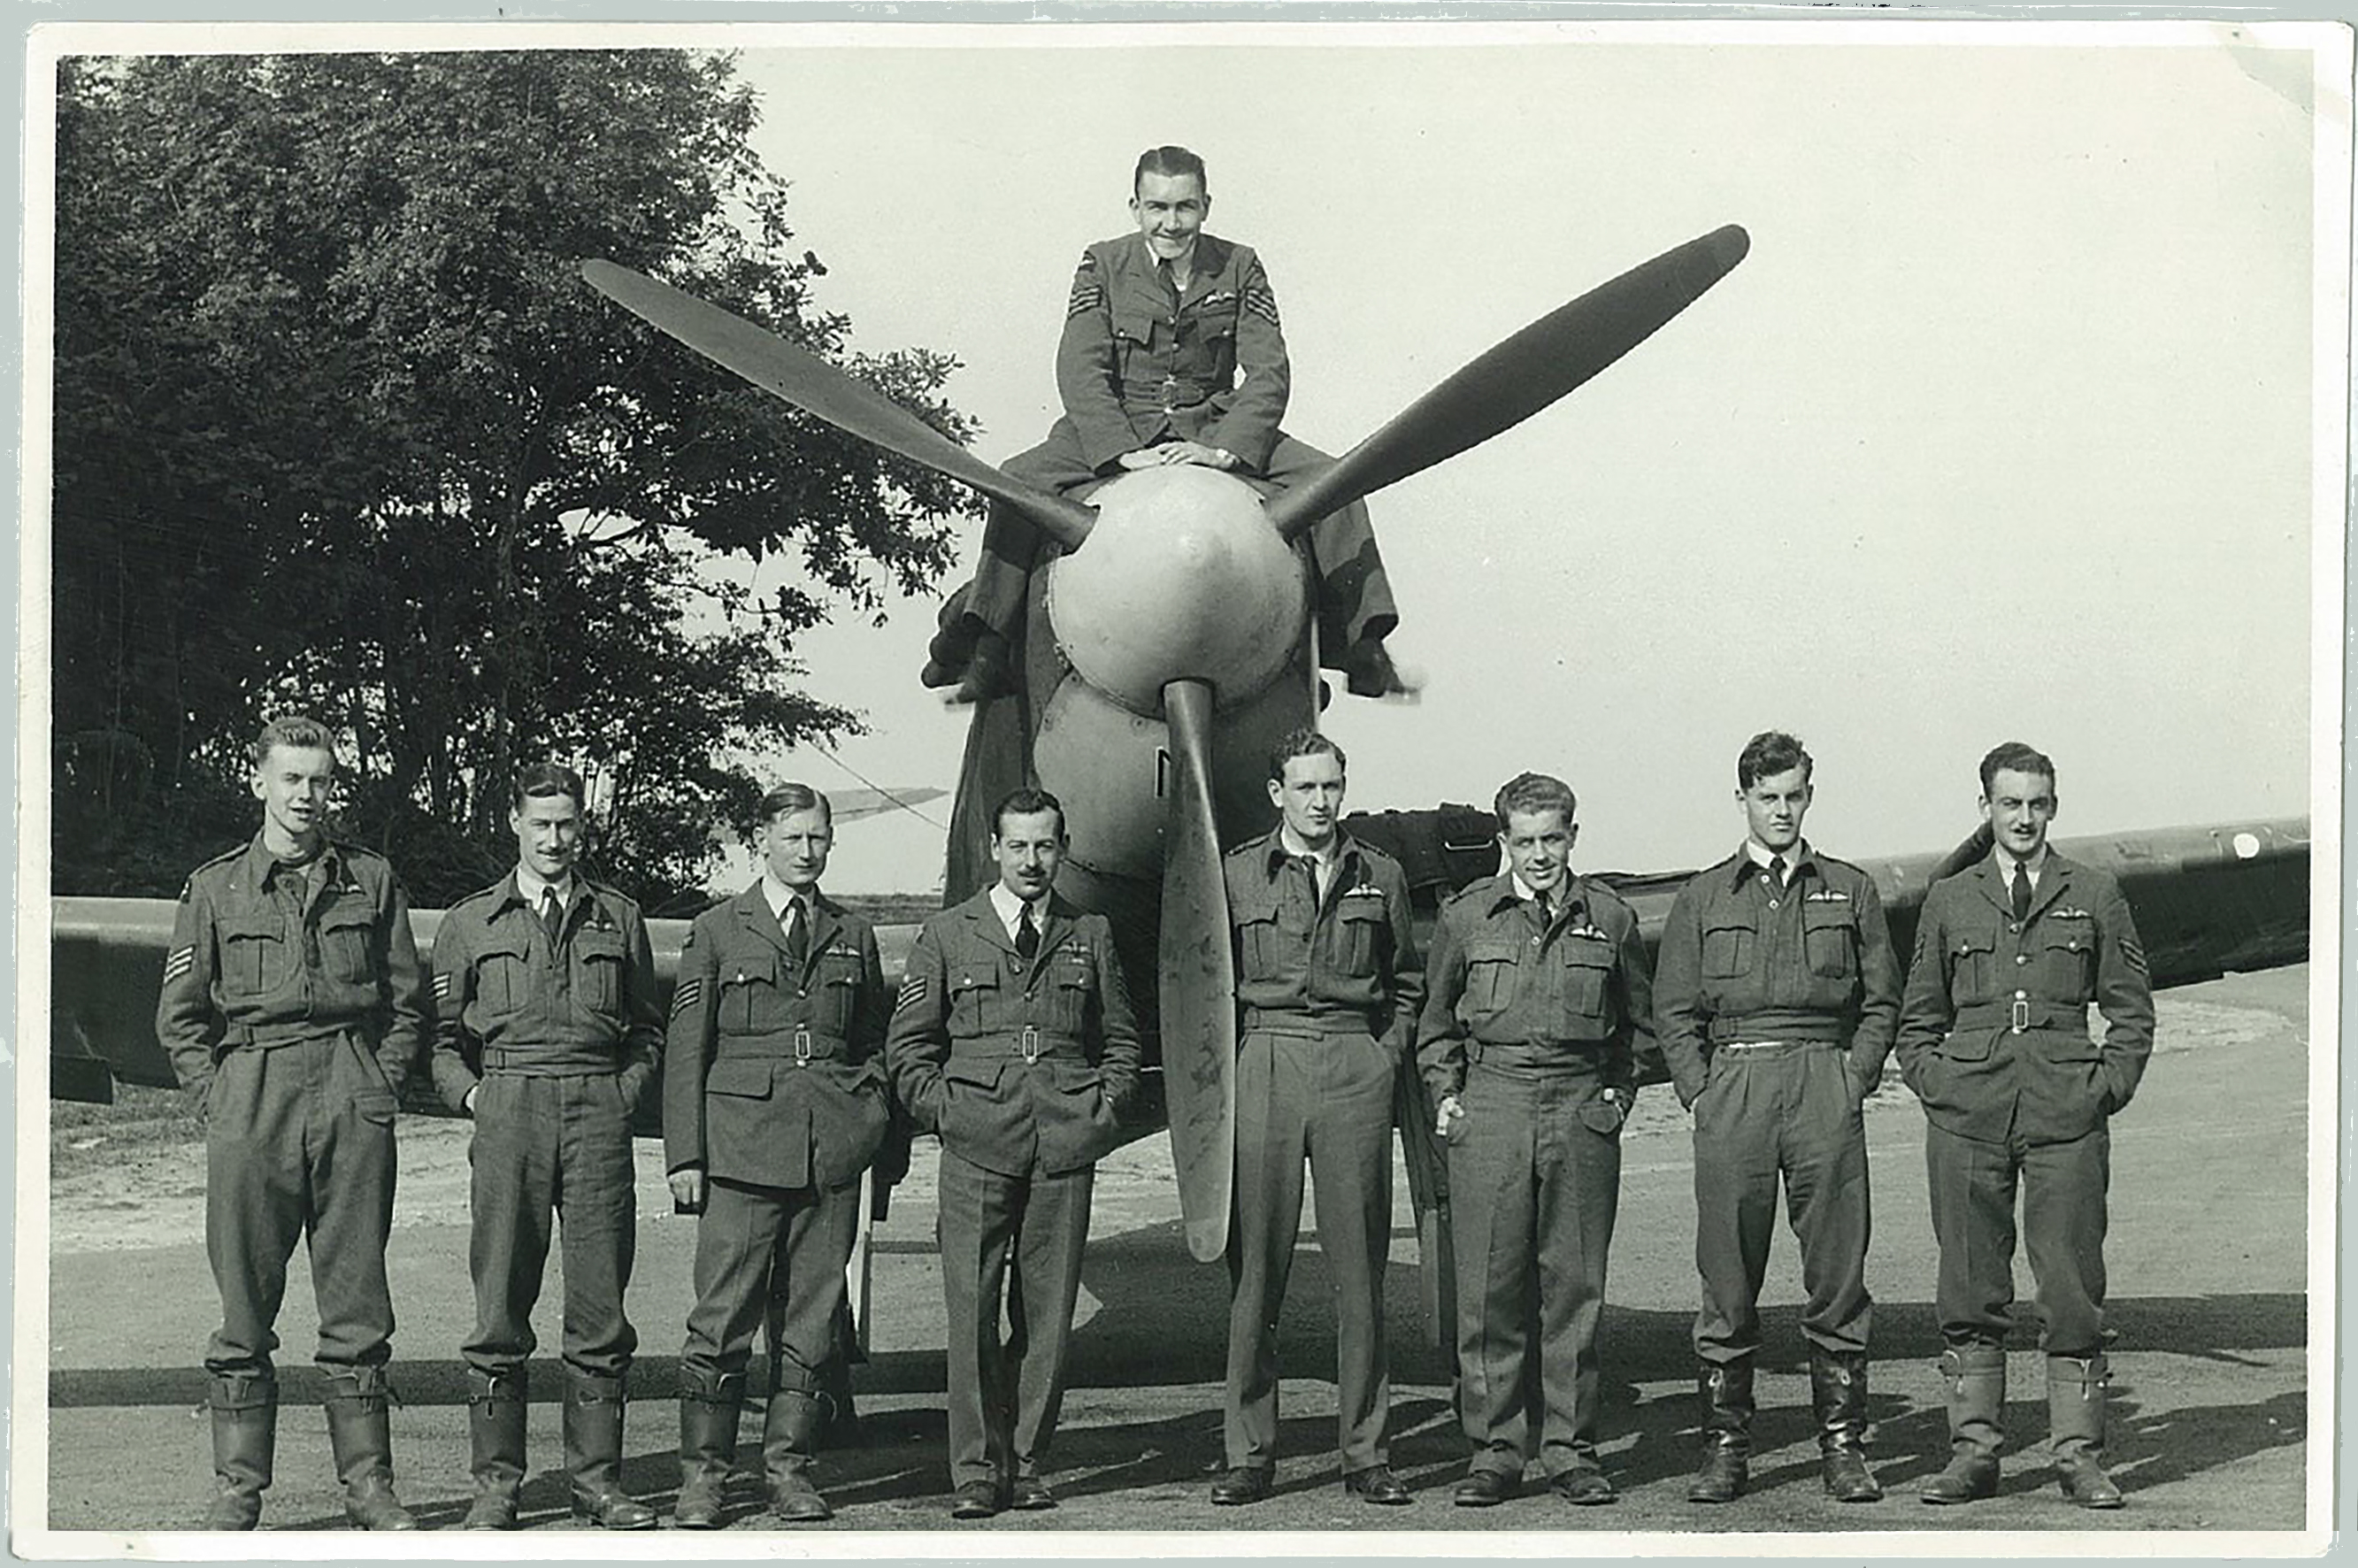 With one of their Supermarine Spitfires, Flying Officer John Stewart Hart (fourth from right) and other members of No. 602 Squadron gather for a photograph in Westhampnett, England, during the Battle of Britain.